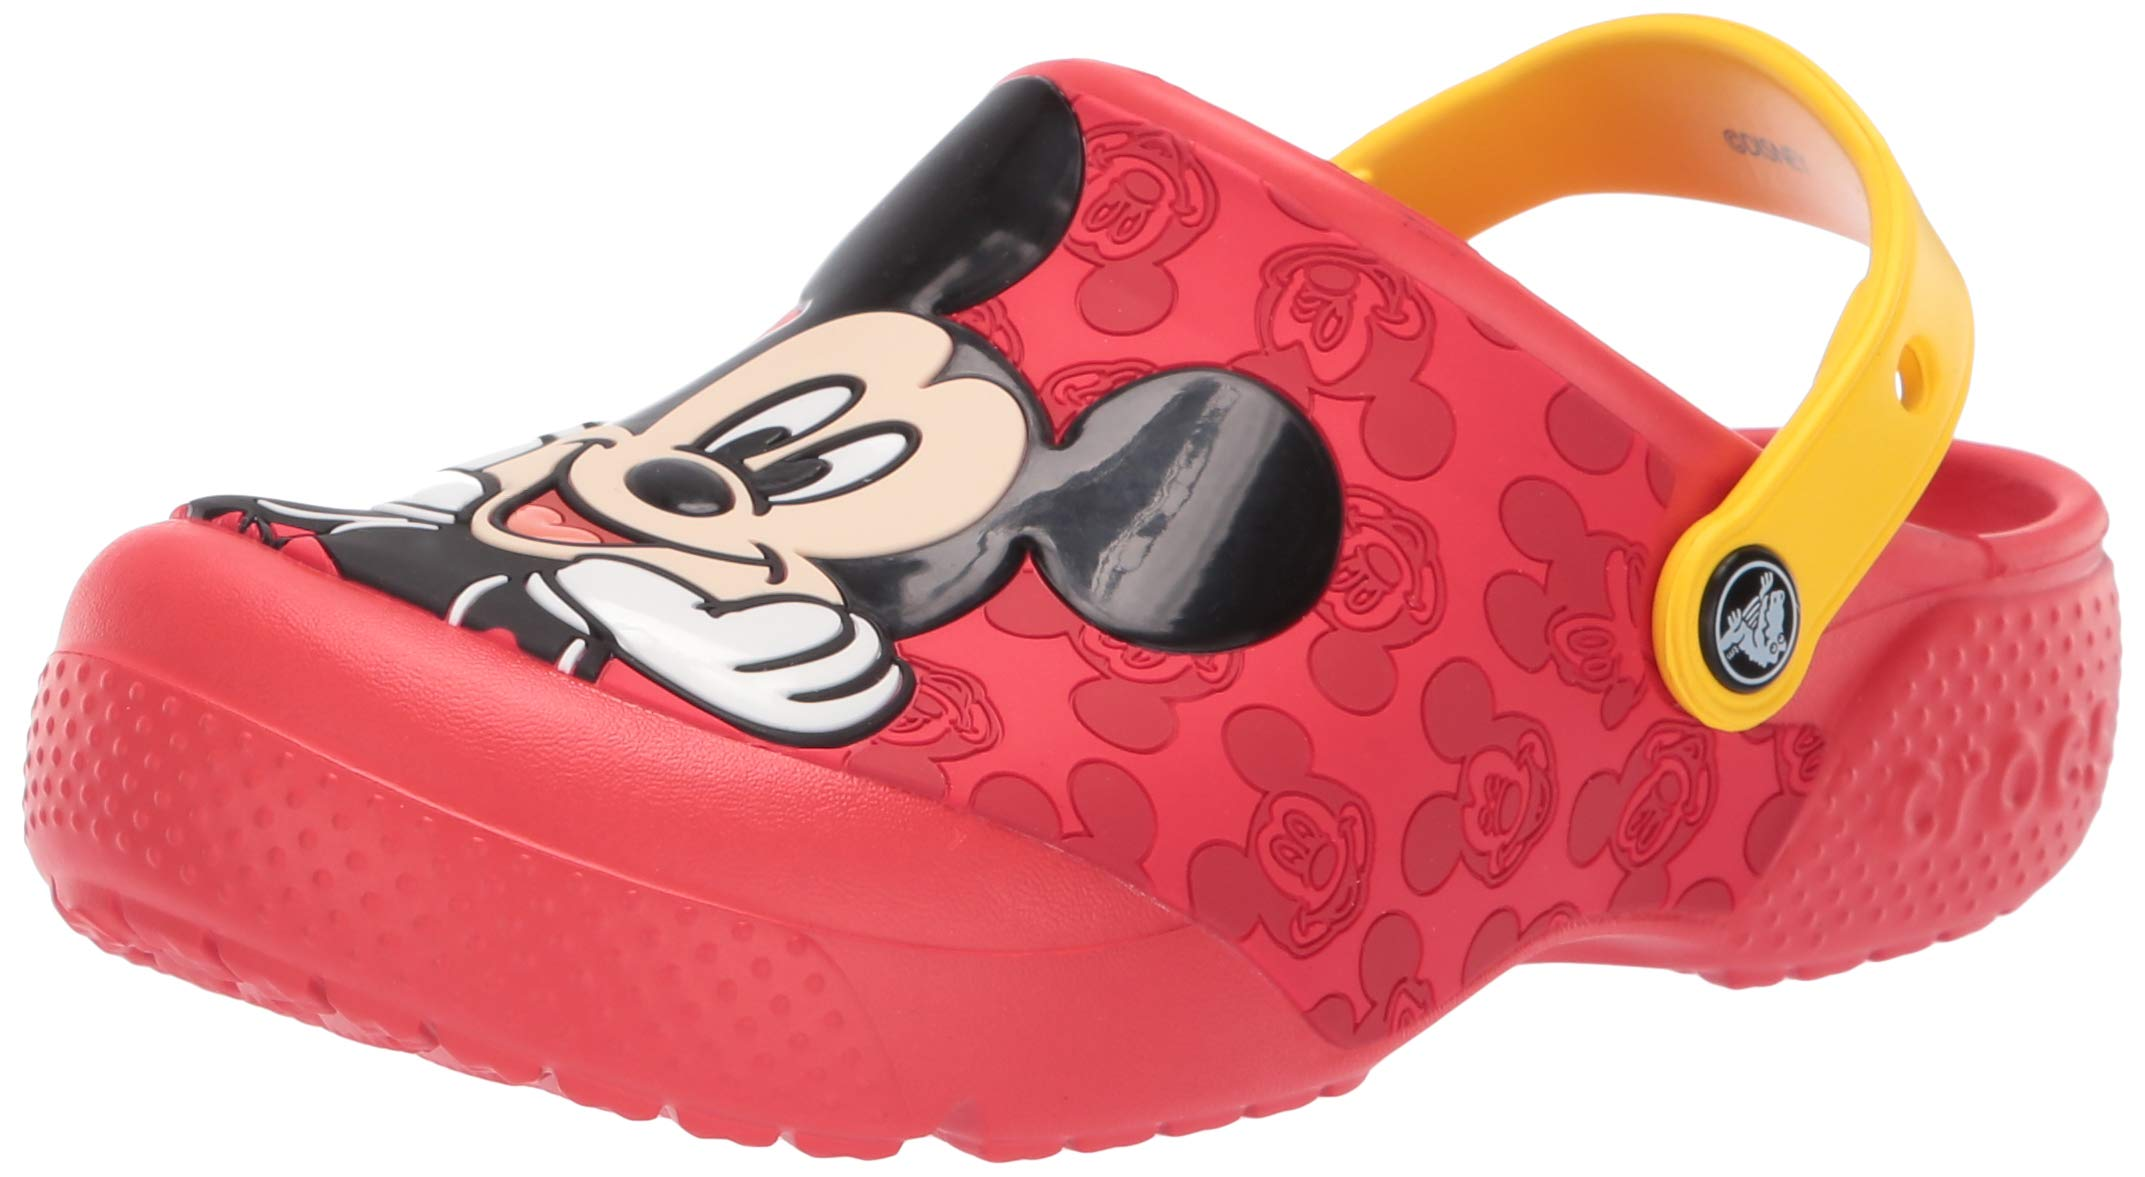 Crocs Unisex Fun Lab Mickey Mouse Clog, Flame, 11 M US Little Kid by Crocs